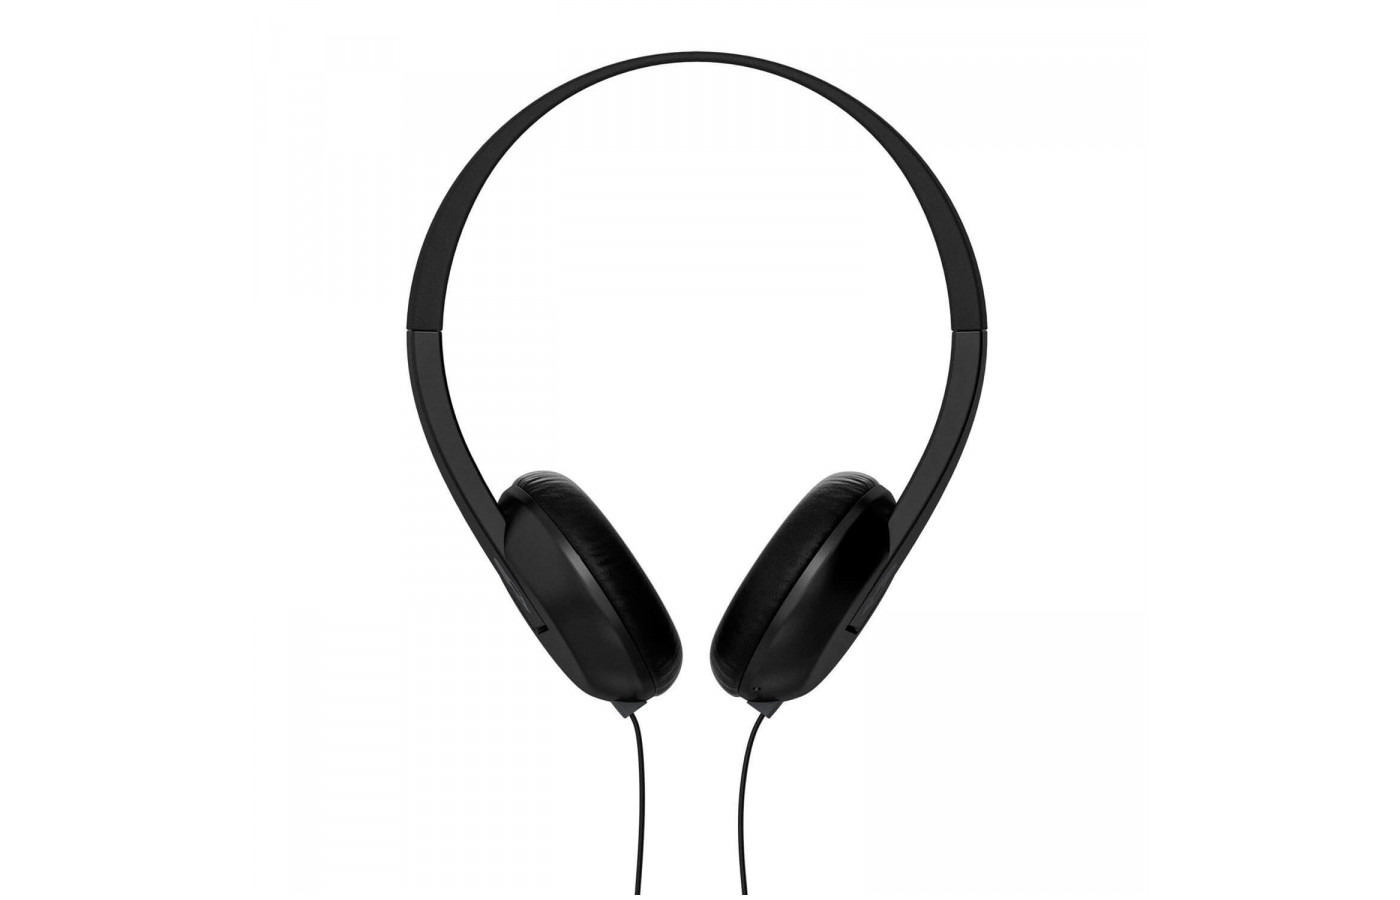 c9d4297733e Skullcandy Uproar Reviewed To Or Not In May 2019. Skullcandy Crusher Bluetooth  Wireless Over Ear Headphones